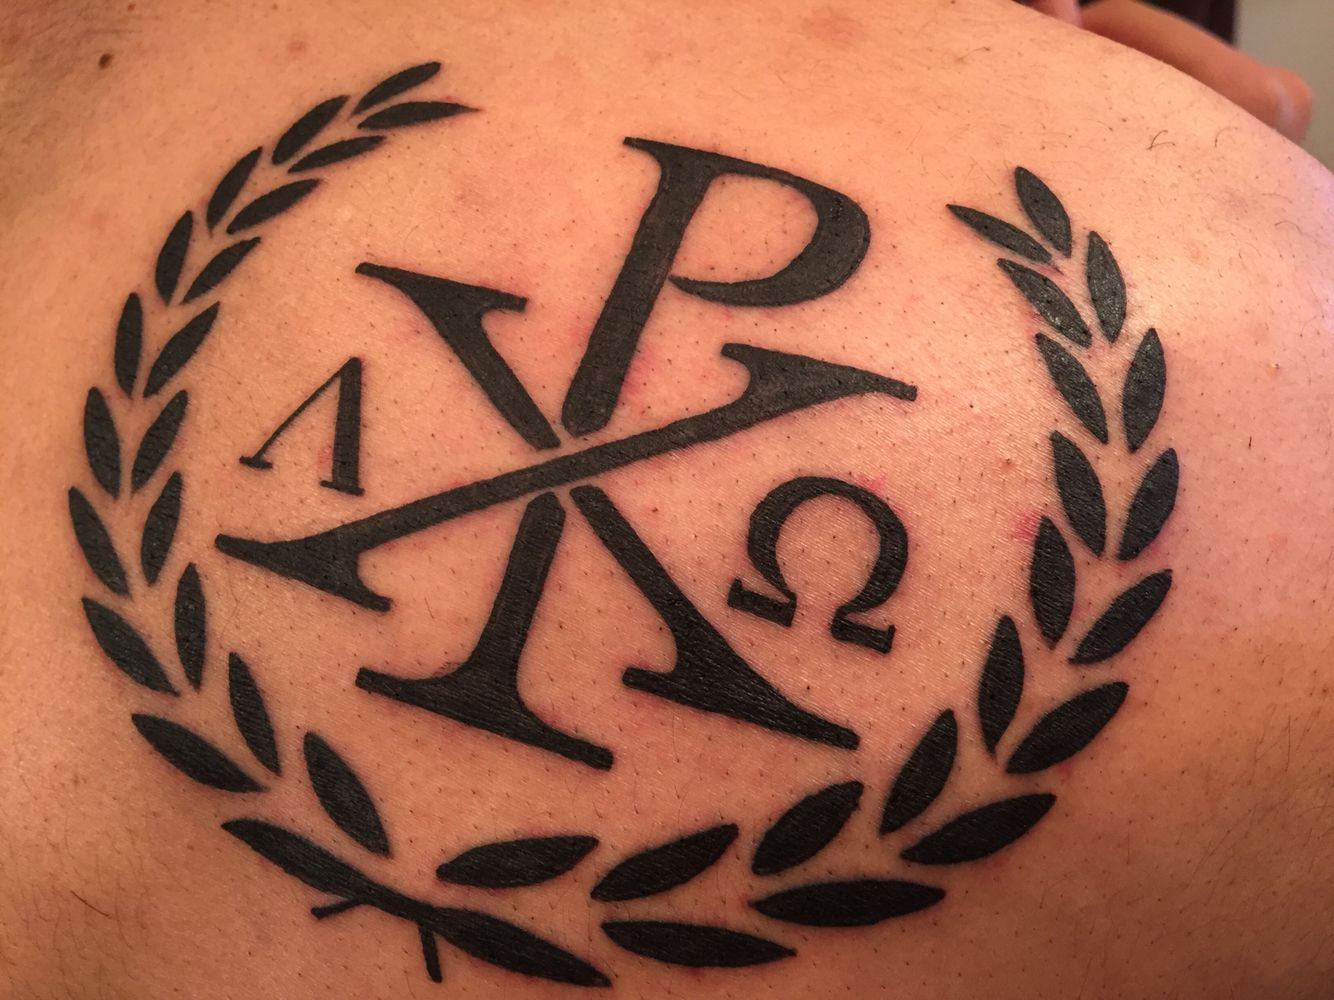 Imageofchirho chi rho chi rho sign is the sign that constantine imageofchirho chi rho chi rho sign is the sign that constantine total war pinterest chi rho filipino tattoos and tattoo buycottarizona Images